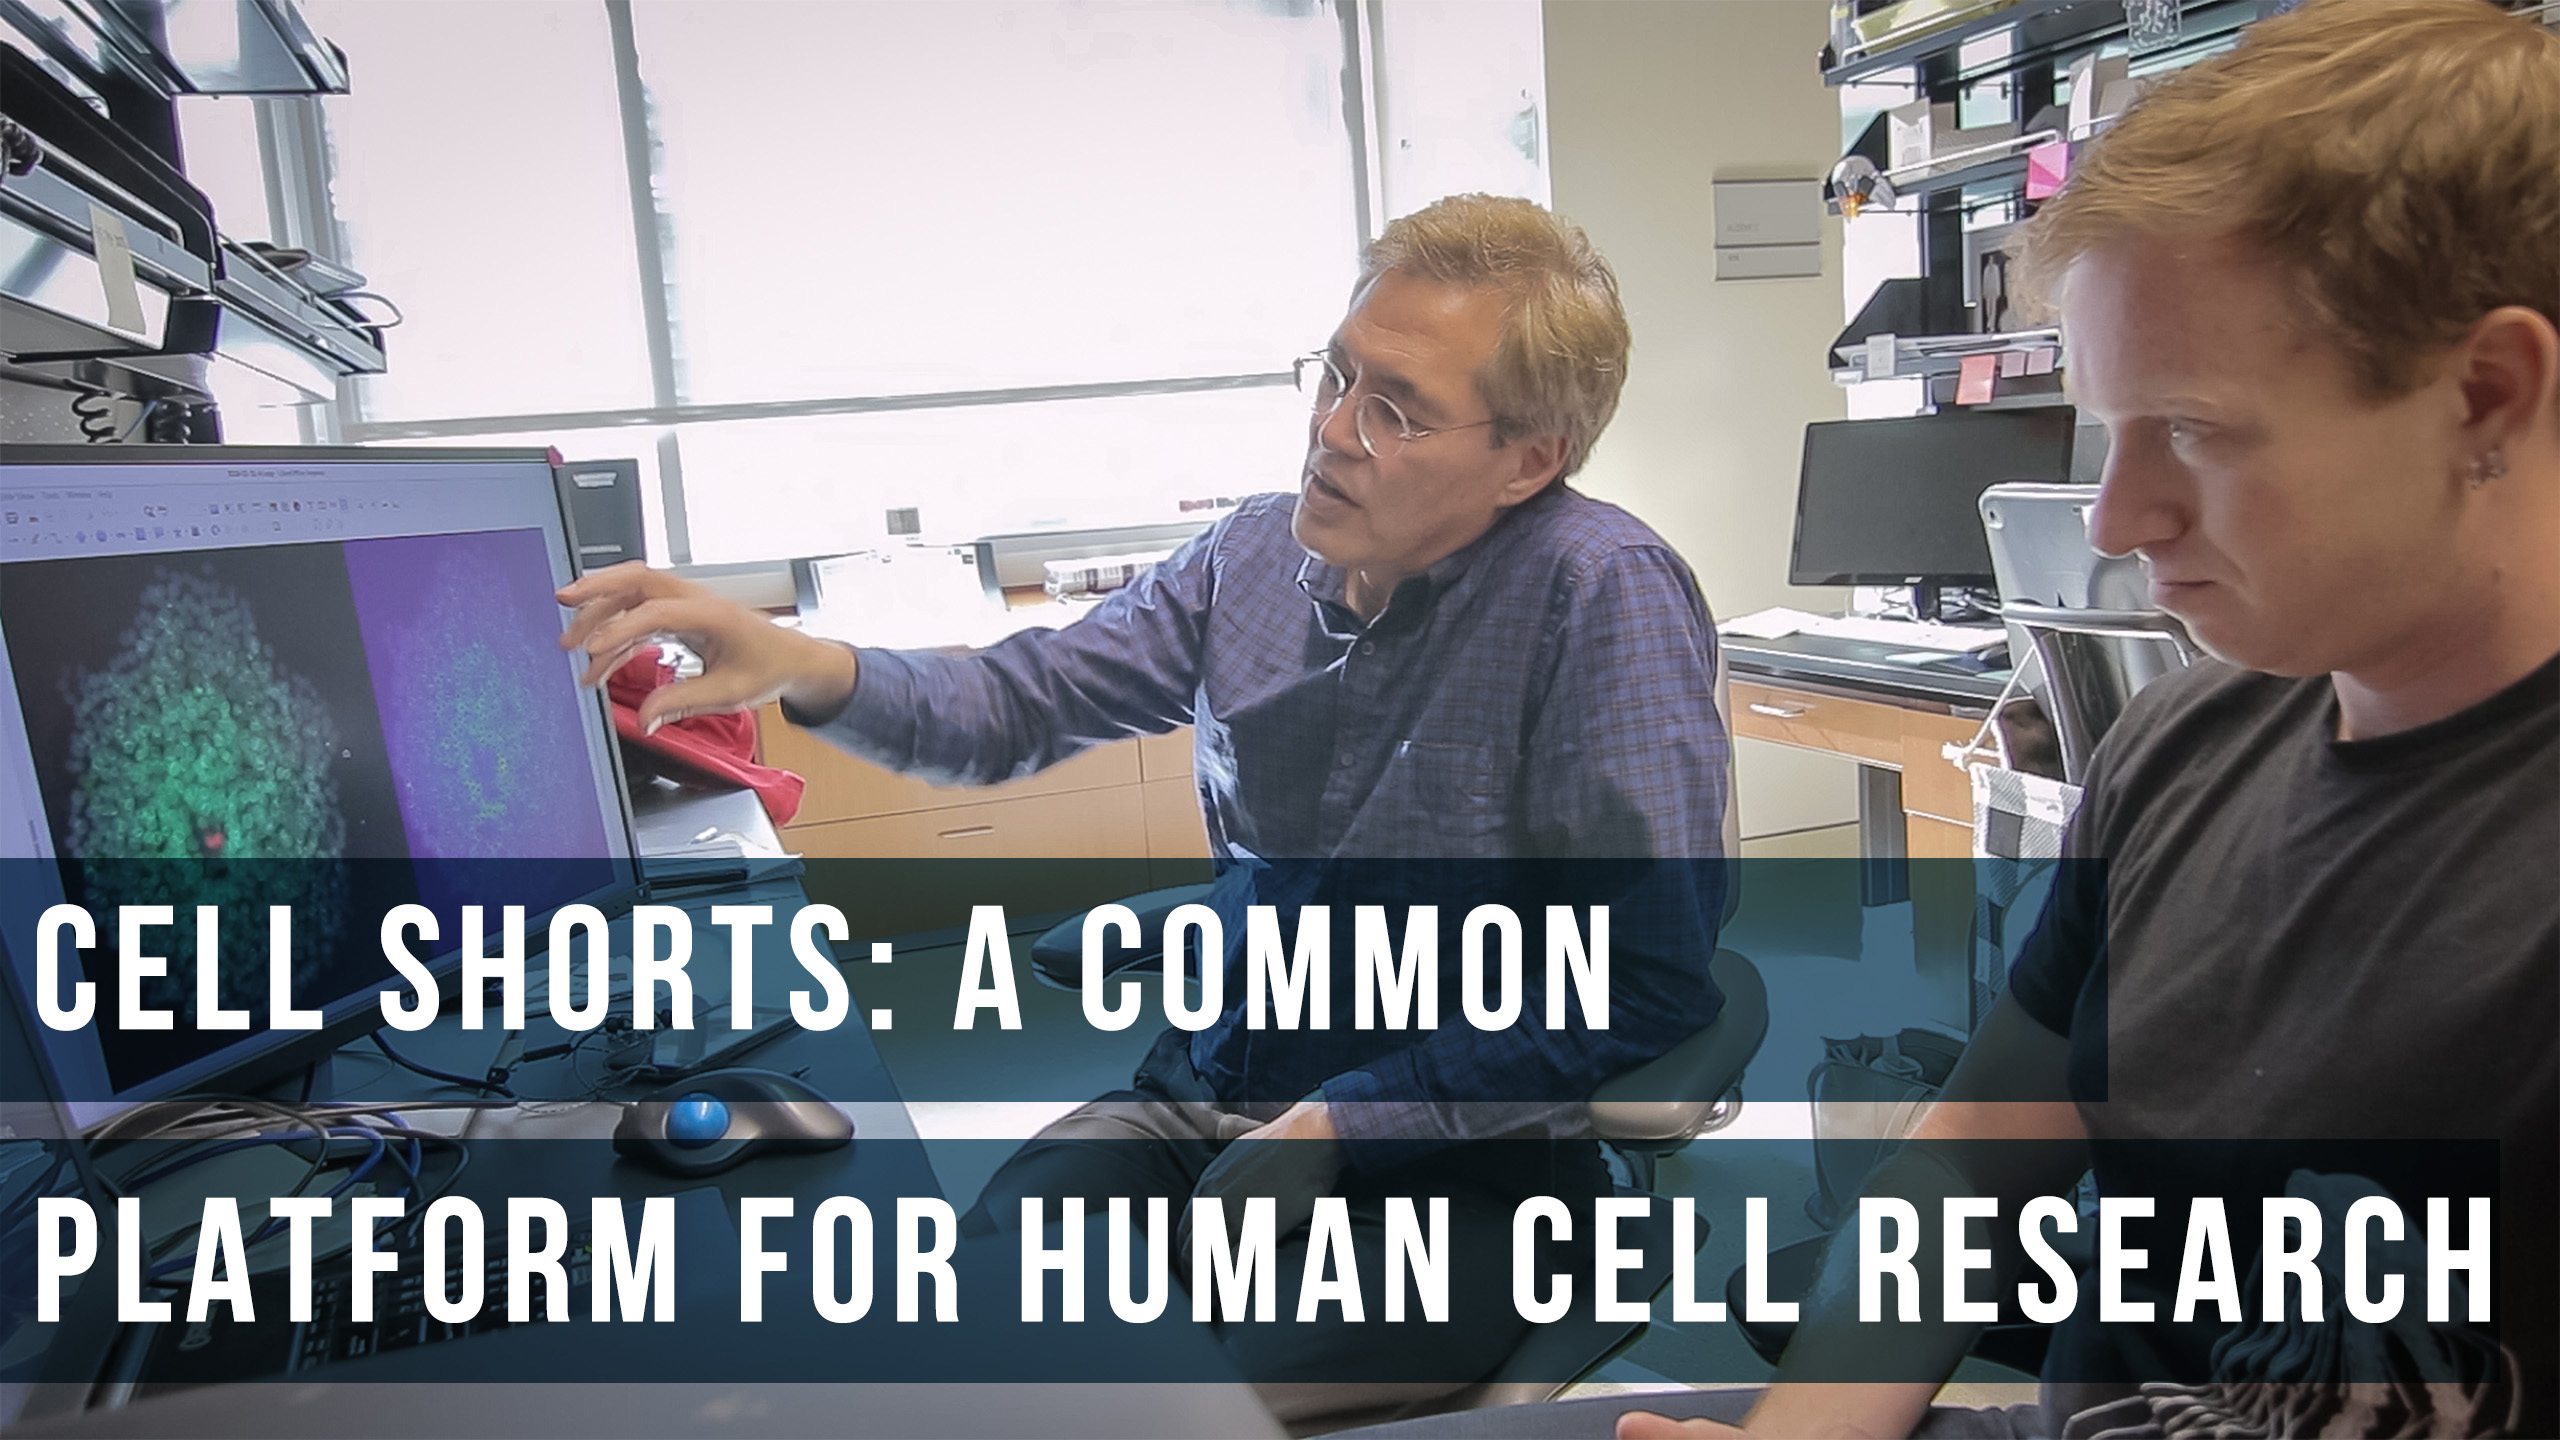 Cell Stories: A Common Platform for Human Cell Research